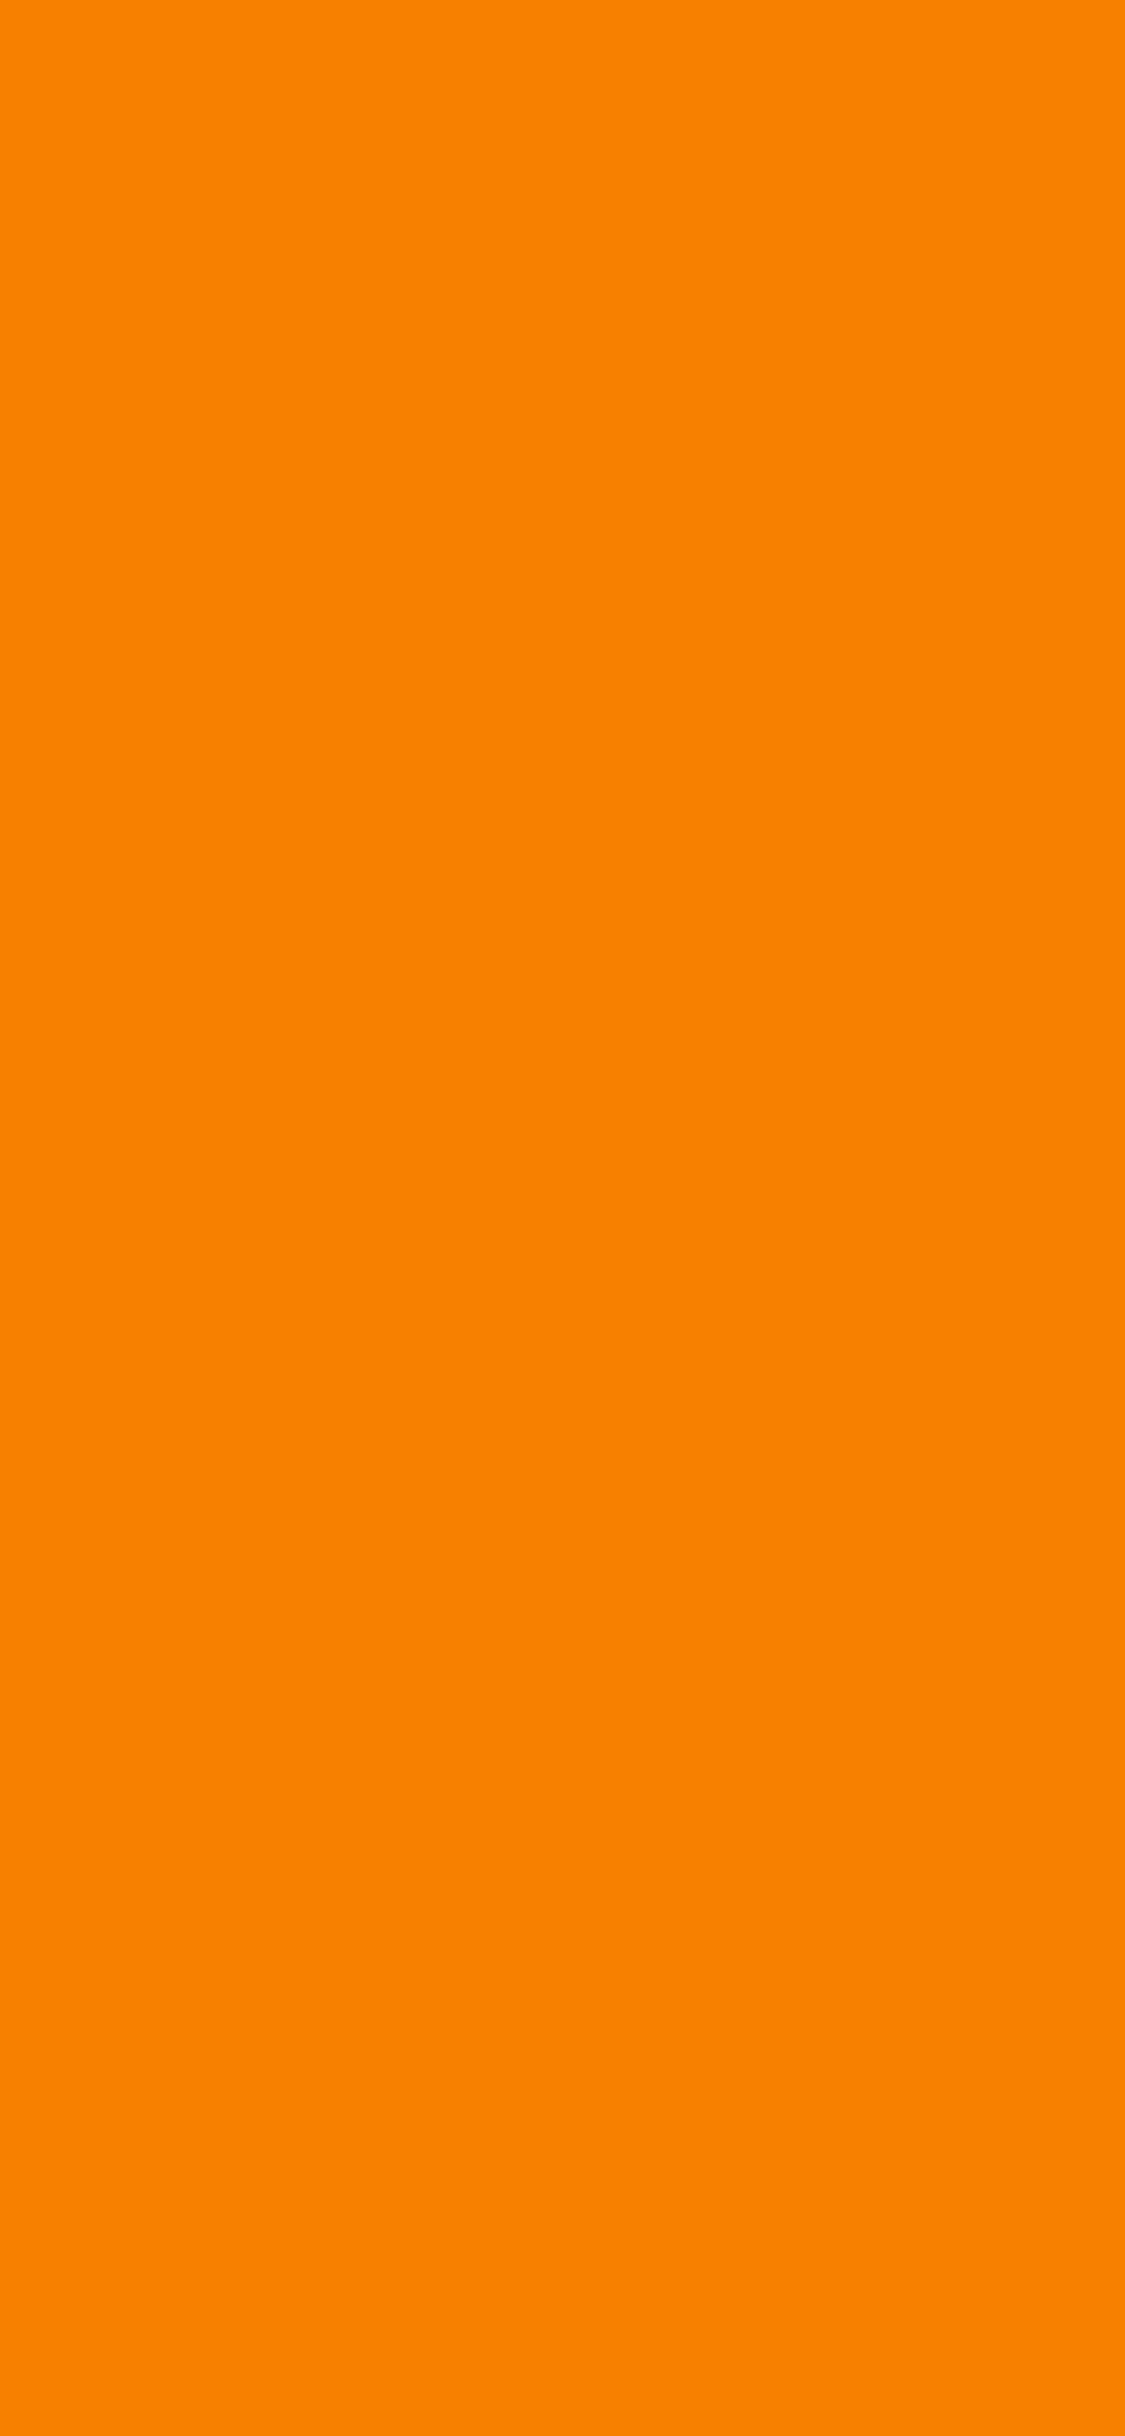 1125x2436 University Of Tennessee Orange Solid Color Background